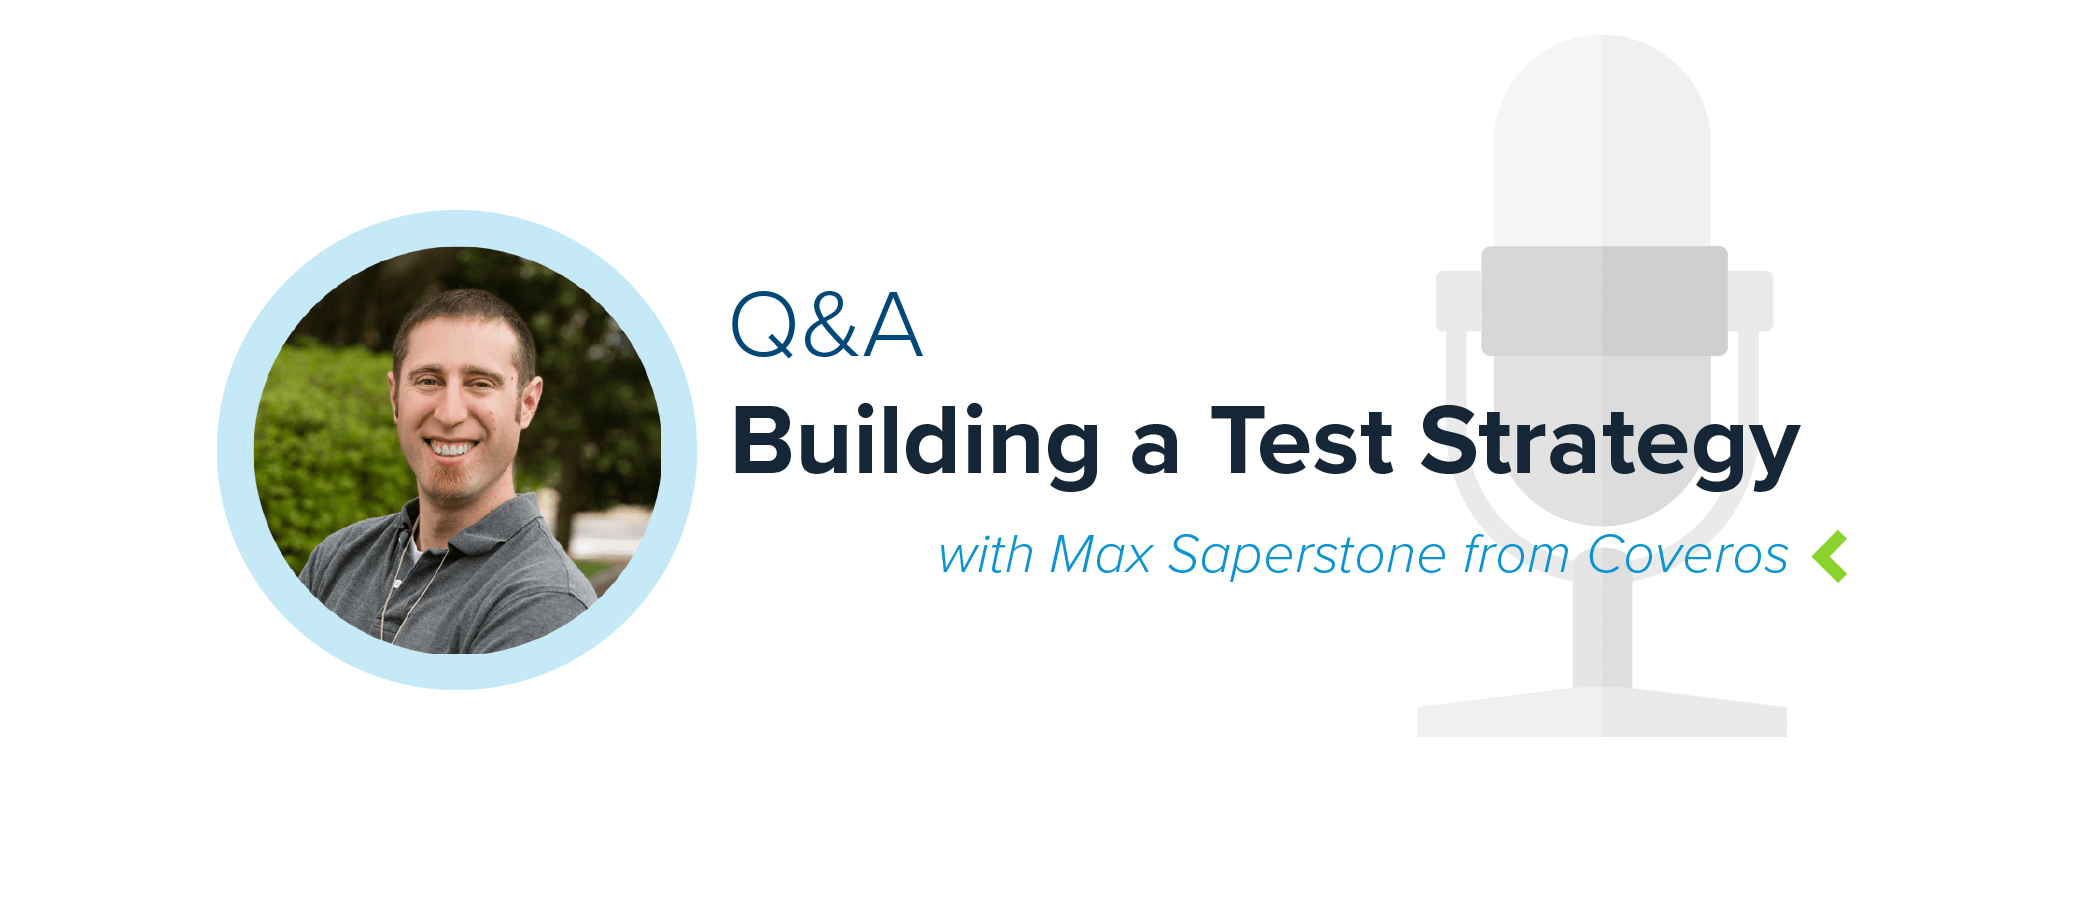 Q&A with Max Saperstone from Coveros: Part Two – Building a Test Strategy